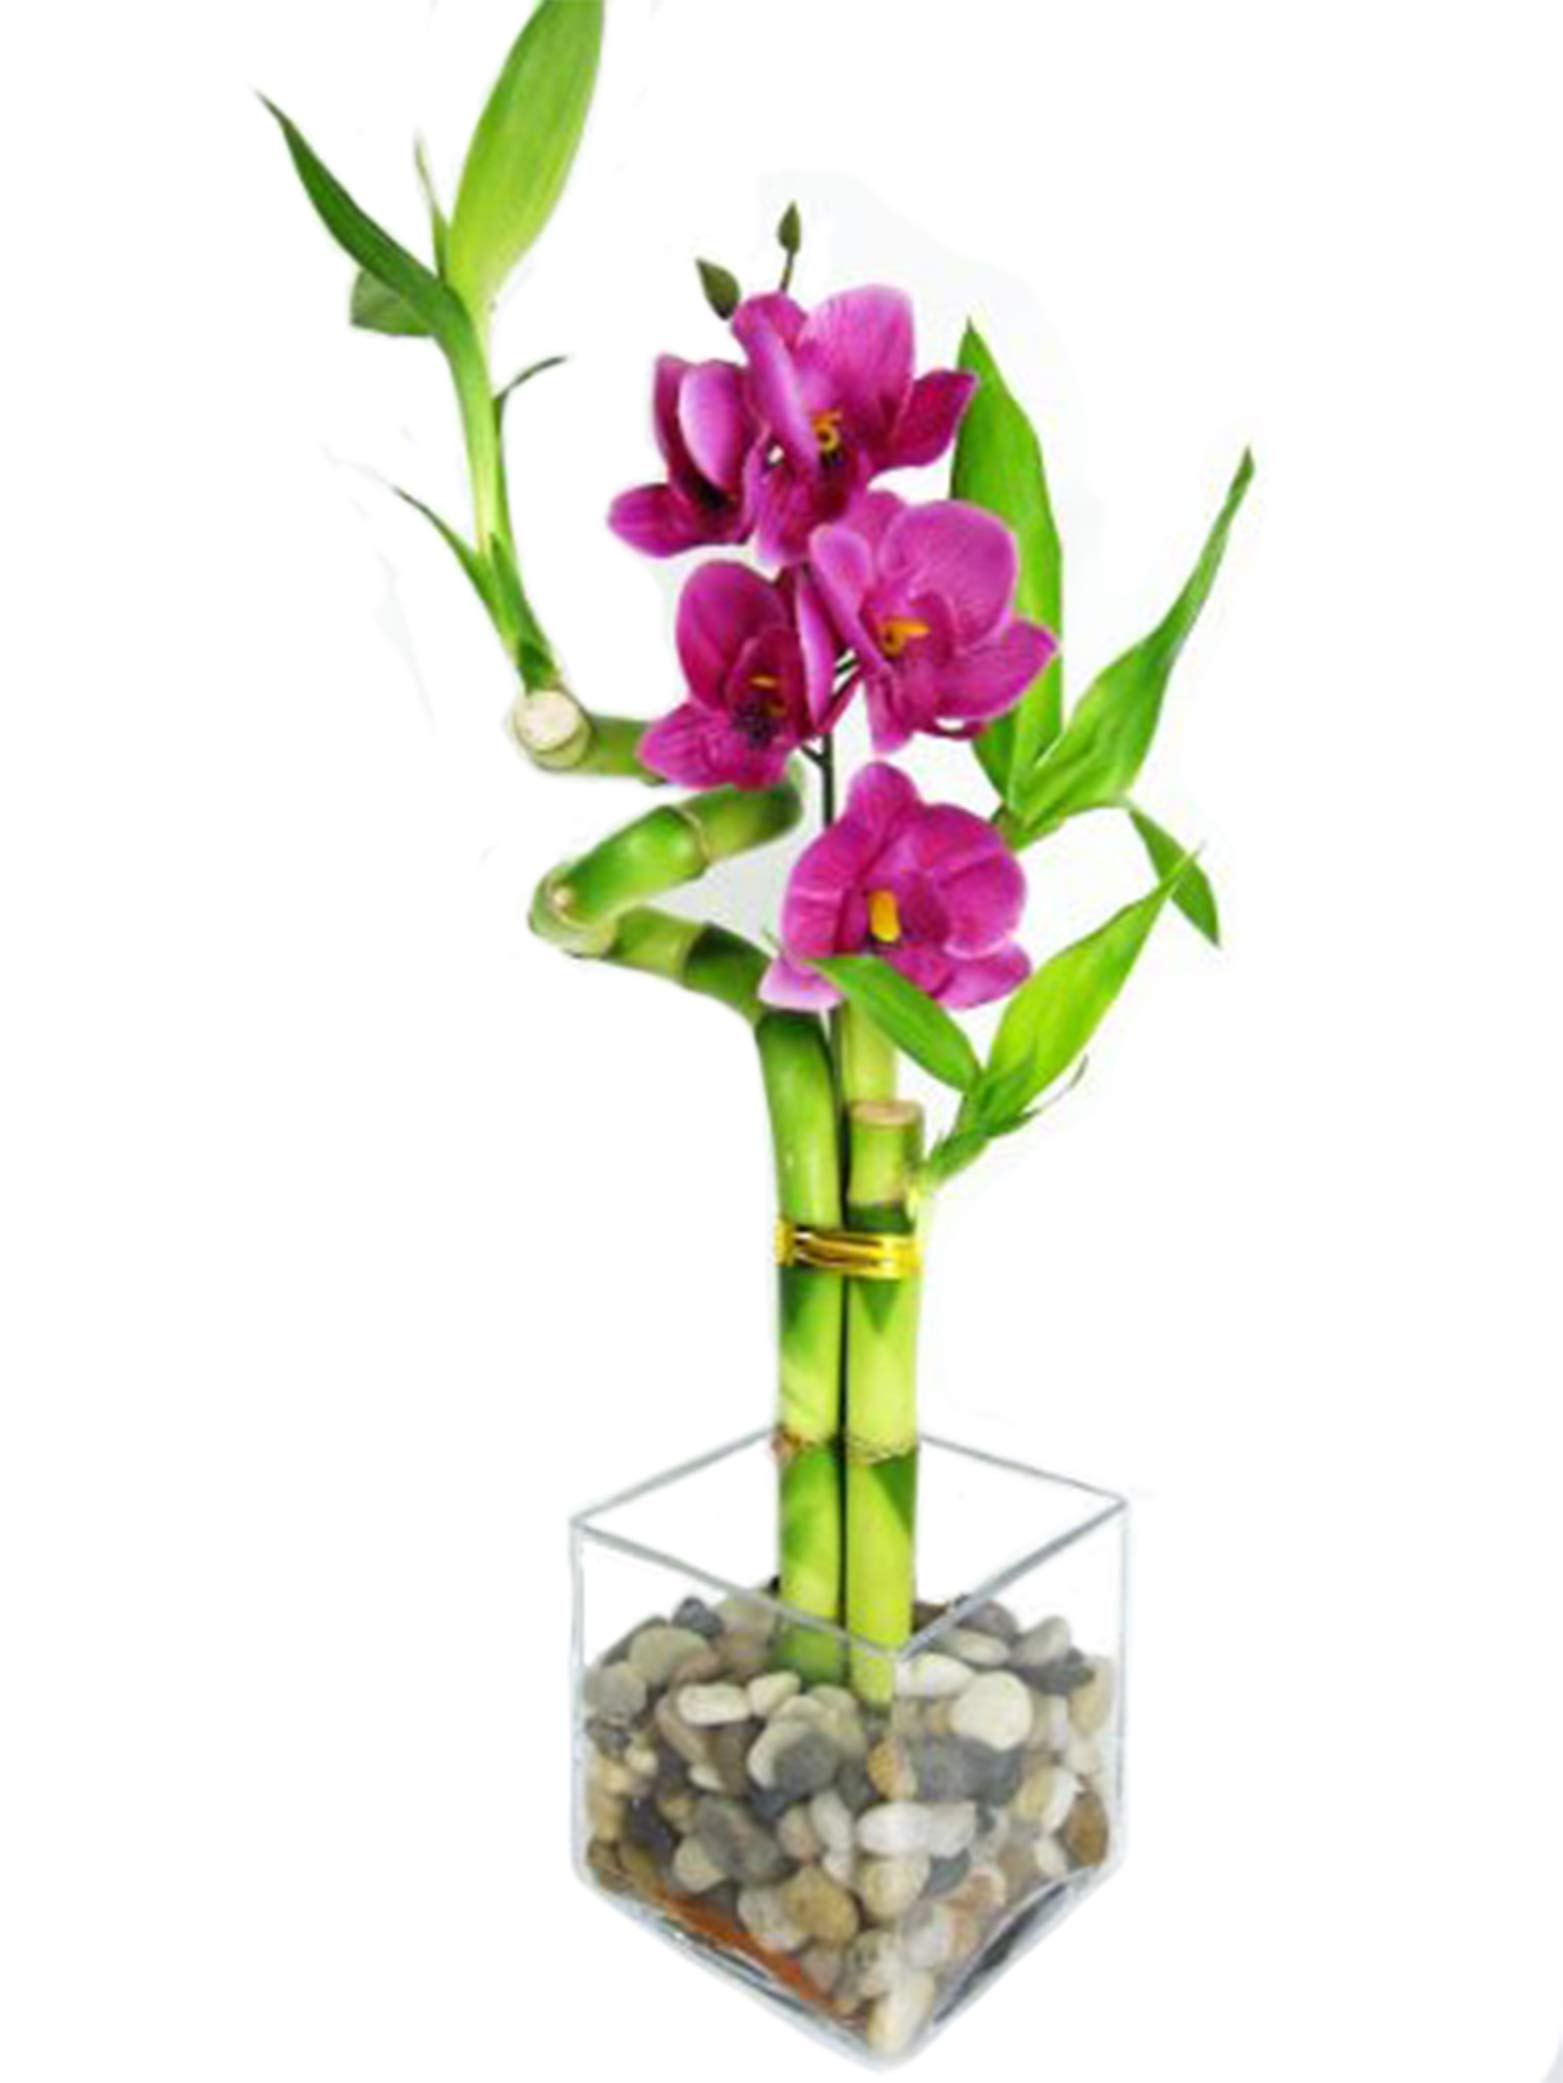 9GreenBox - Lucky Bamboo - Spiral Style with Silk Flowers and Glass Vase with Pebbles by 9GreenBox